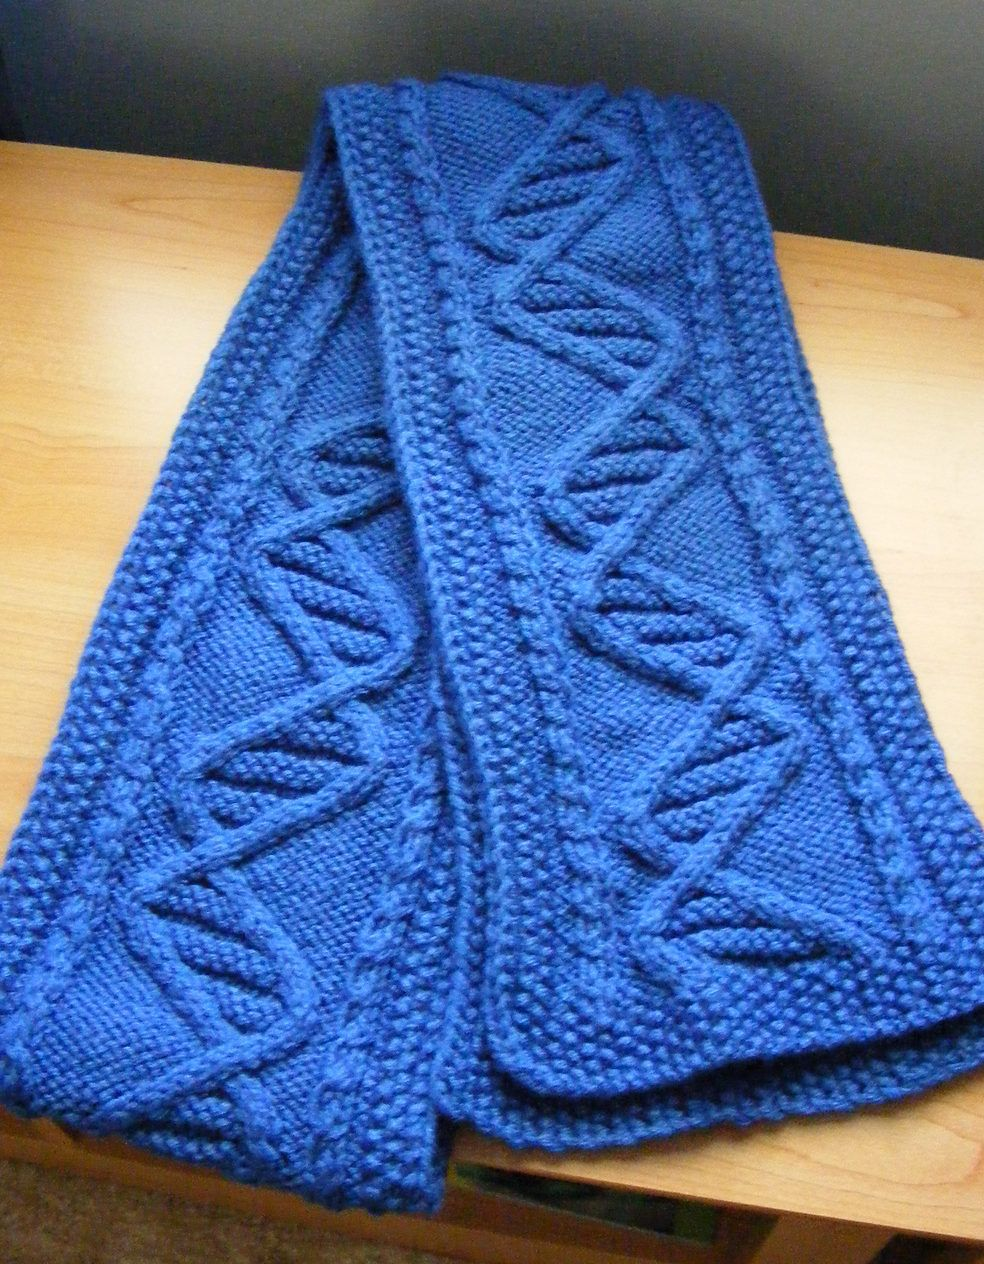 Free Knitting Pattern for DNA Scarf - This scarf features a cable ...